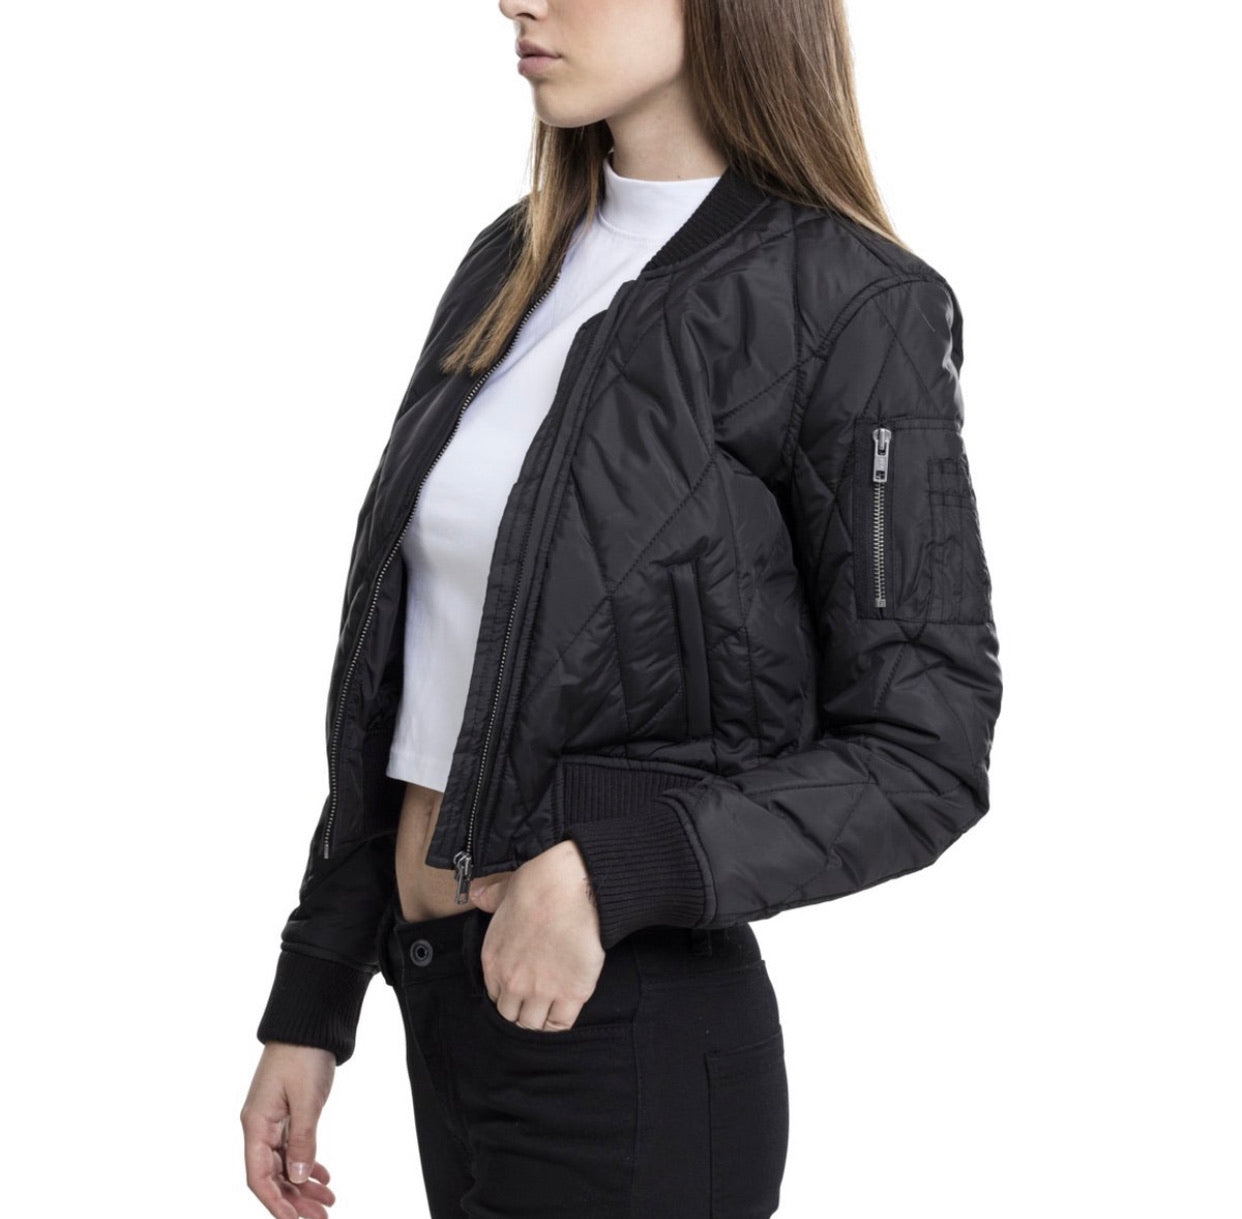 The Women's Quilted Bomber Jacket - Up to Size XXL